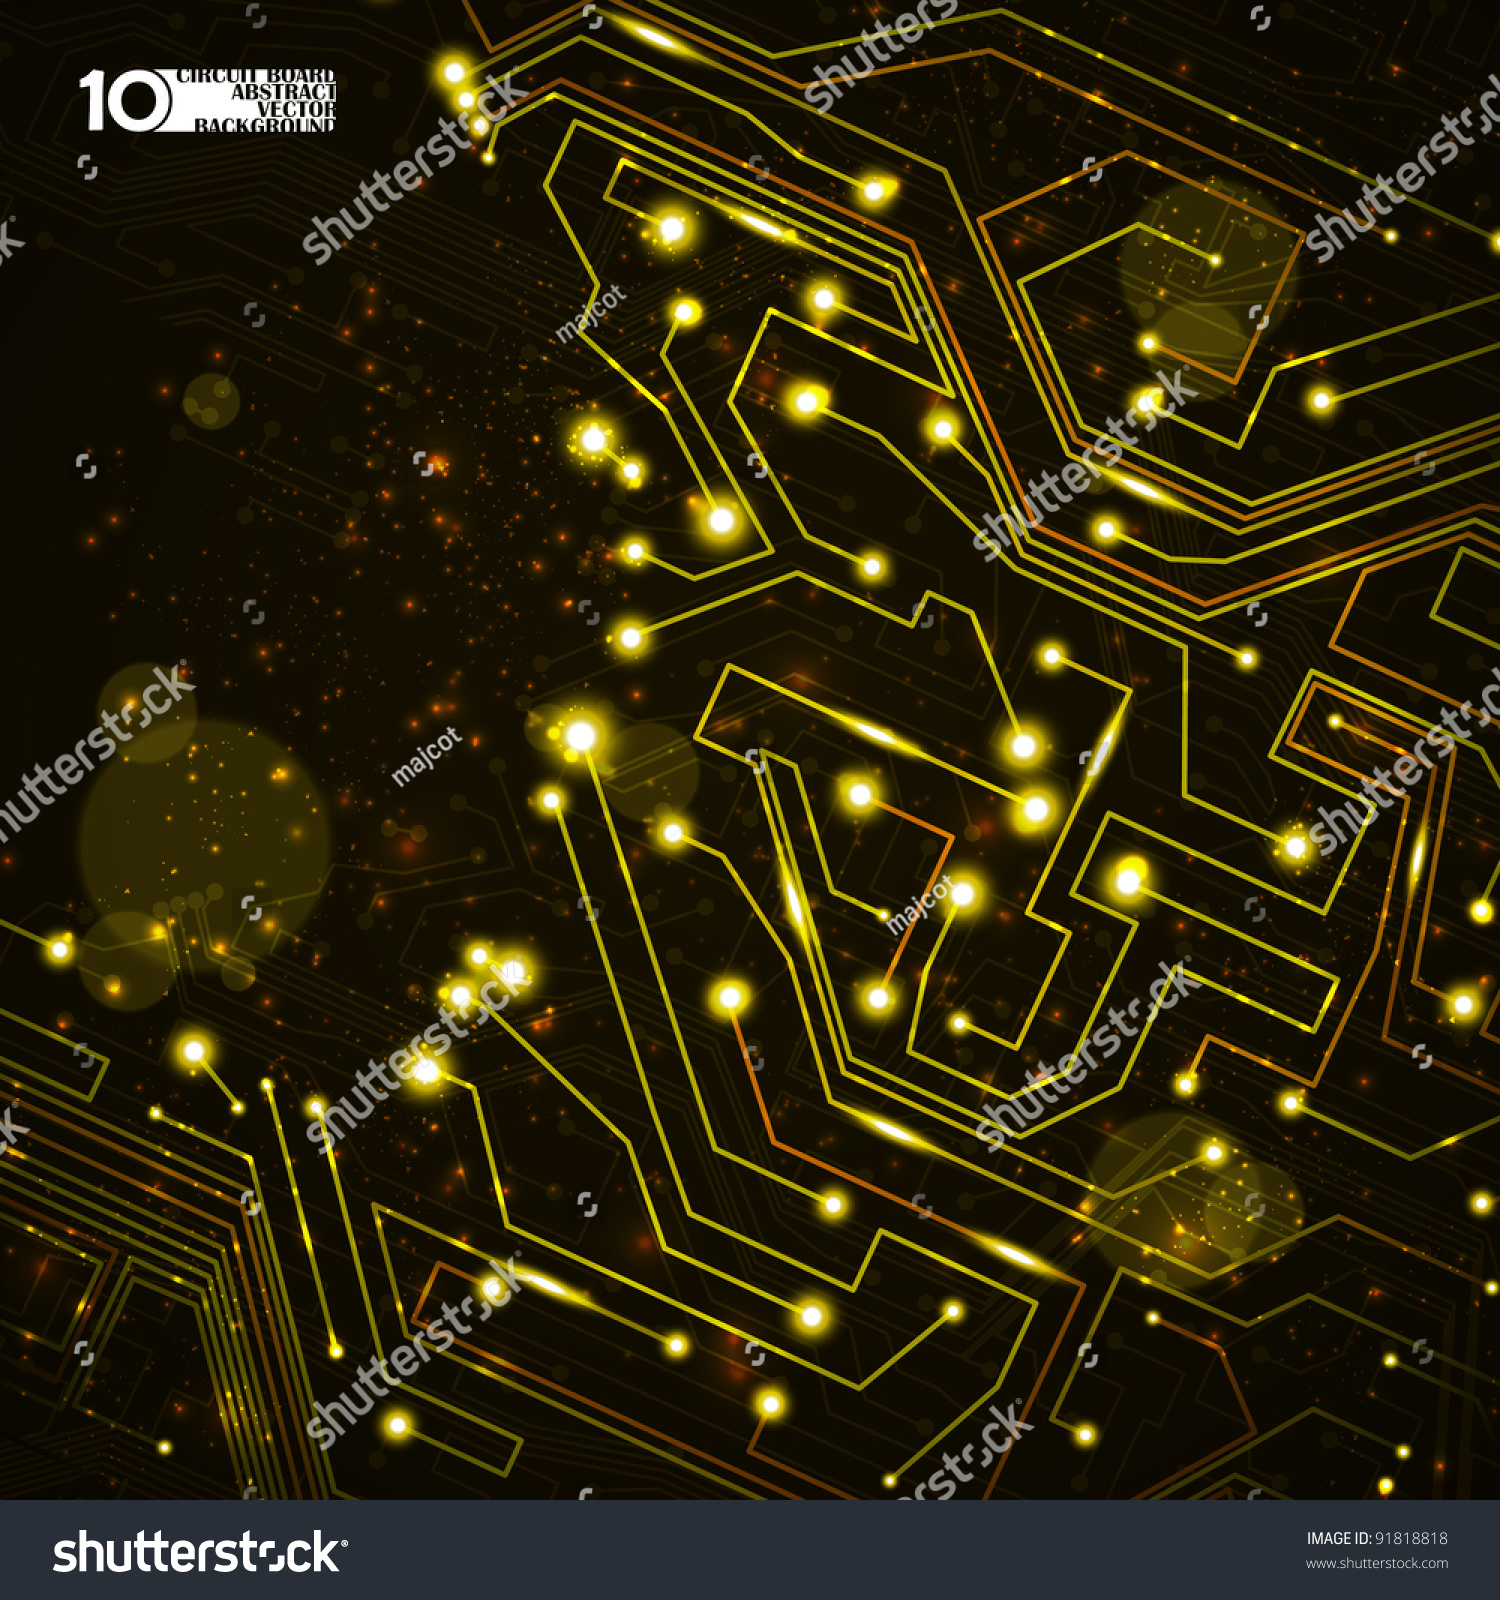 Circuit Board Vector Background Technology Illustration Stock Paper Backgrounds Blue Electronic Circuits Hd Eps10